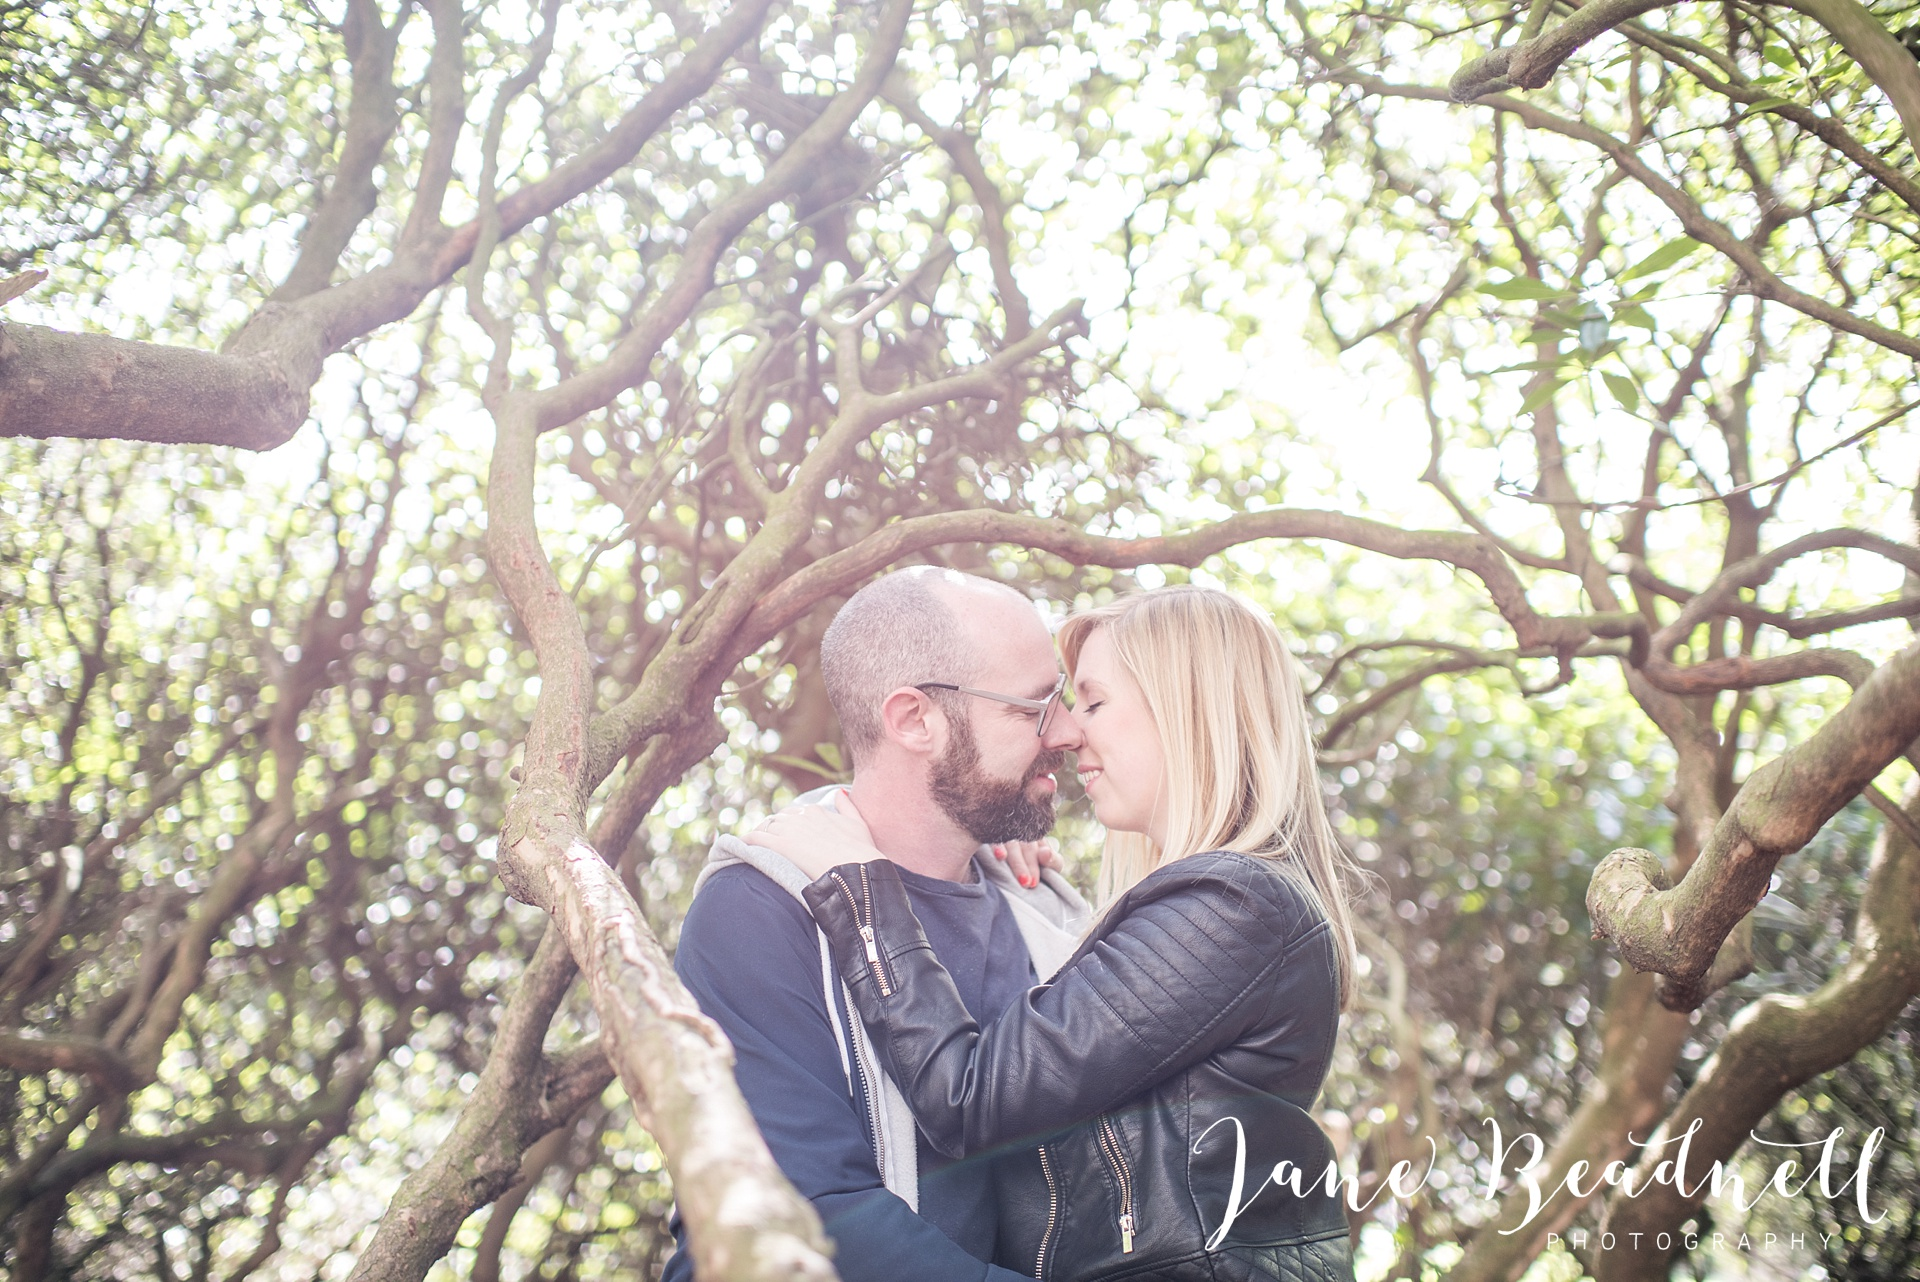 Temple Newsam engagement photography by Jane Beadnell Wedding Photography_0010